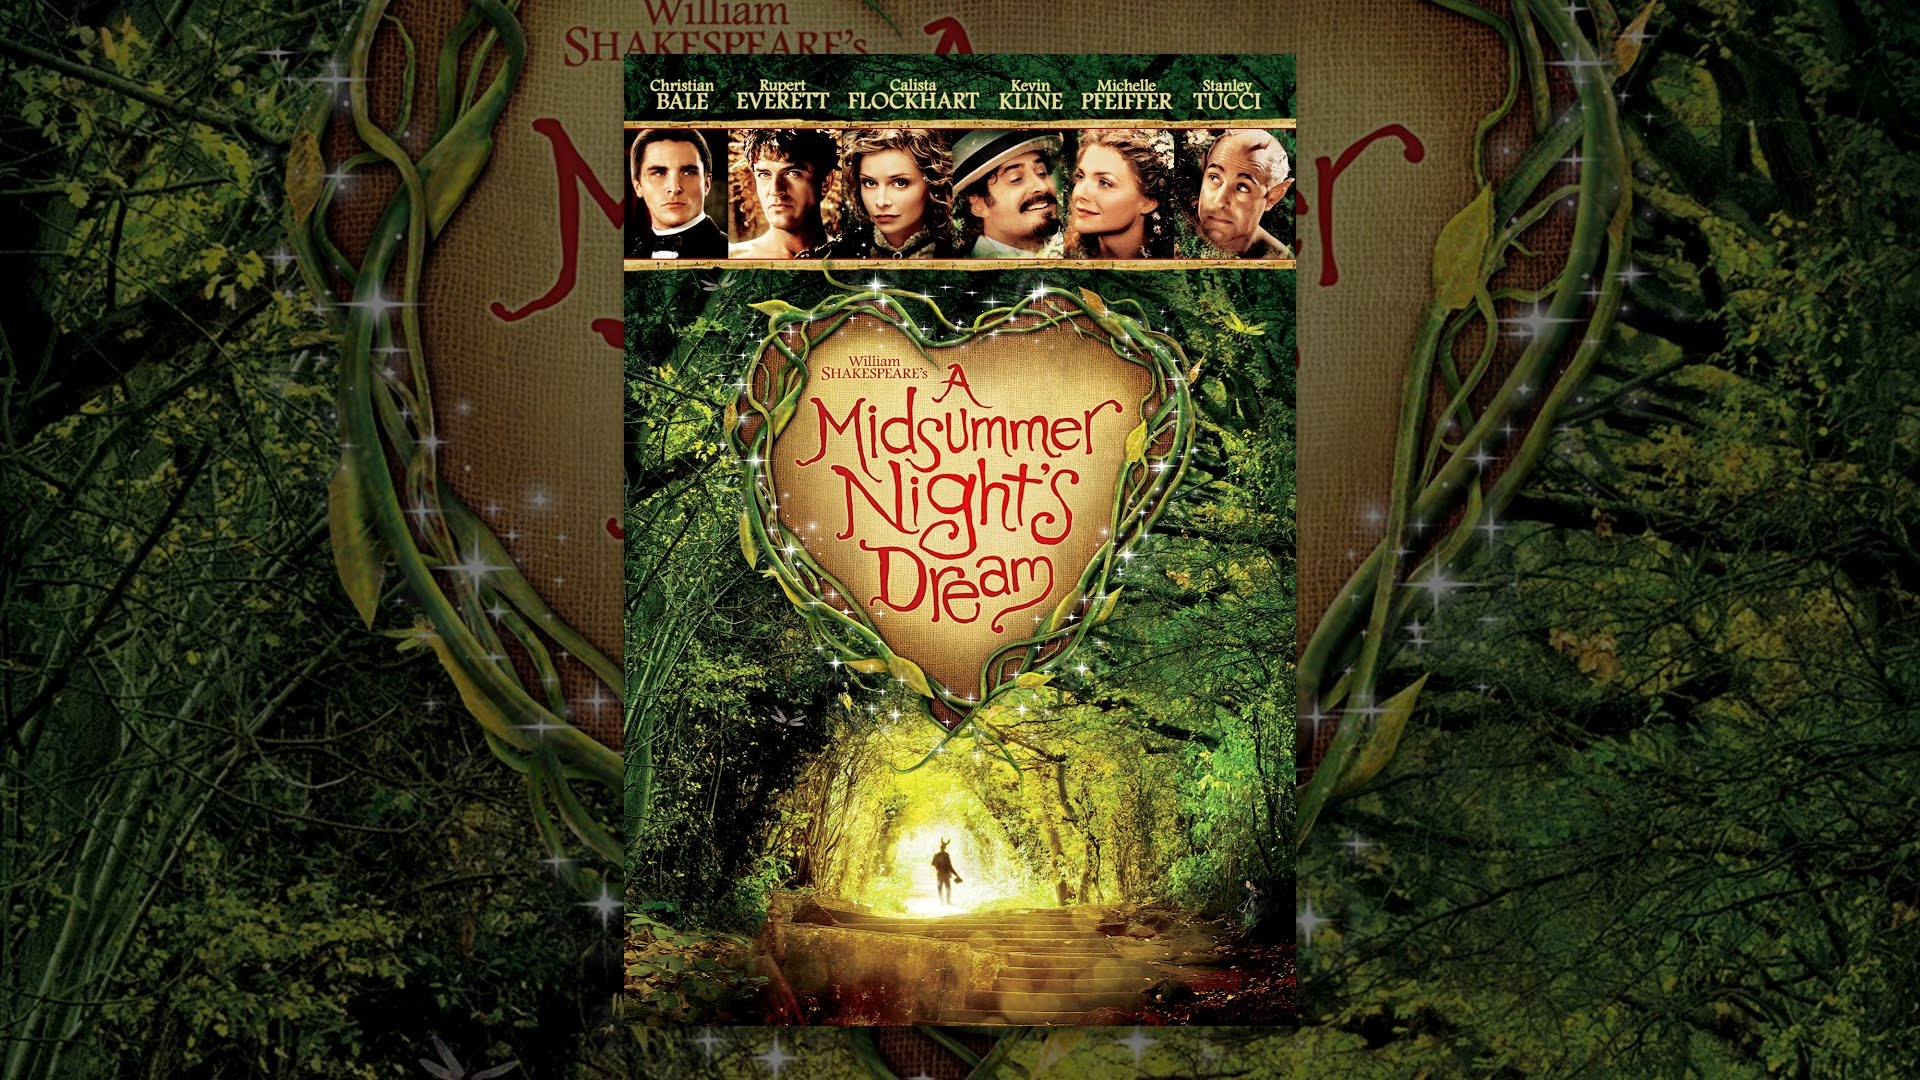 the concept of love in a midsummer nights dream by william shakespeare A summary of themes in william shakespeare's a midsummer night's dream learn exactly what happened in this chapter, scene, or section of a midsummer night's dream and what it means.